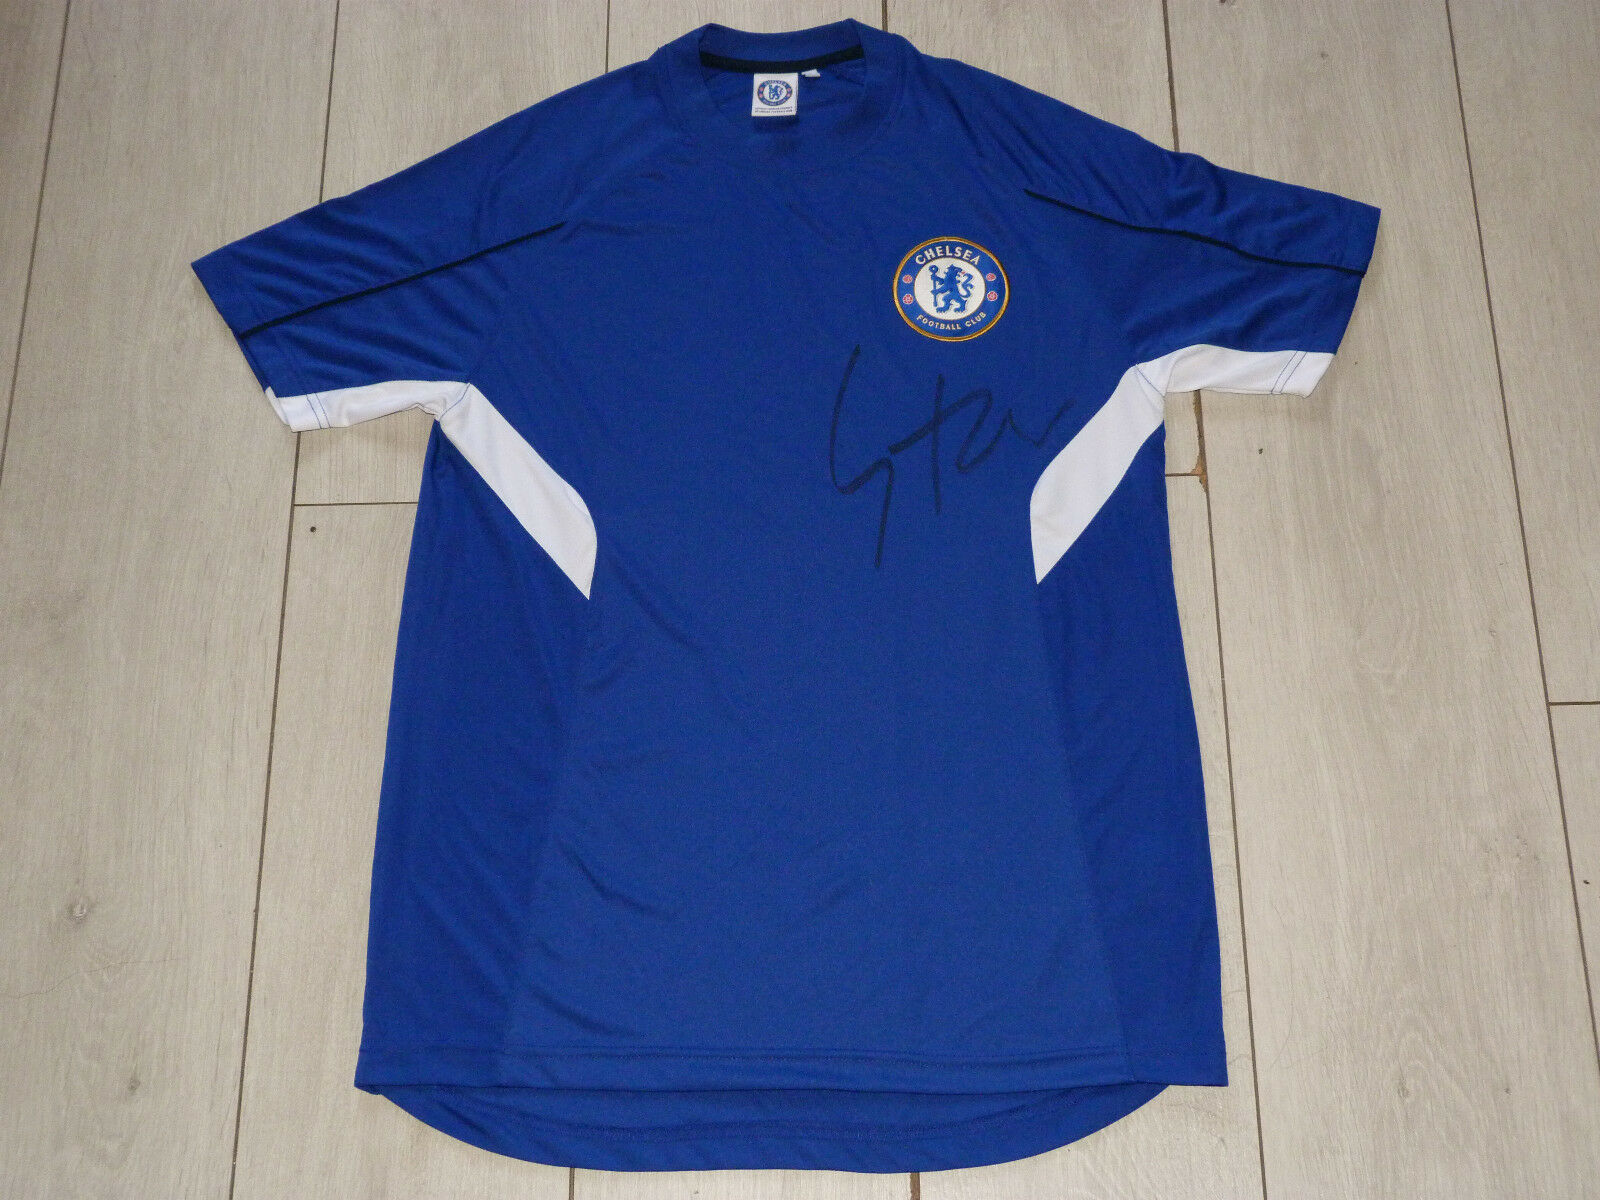 Maillot signé jersey FC CHELSEA bluees signed SAMUEL ETO'O ultras foot